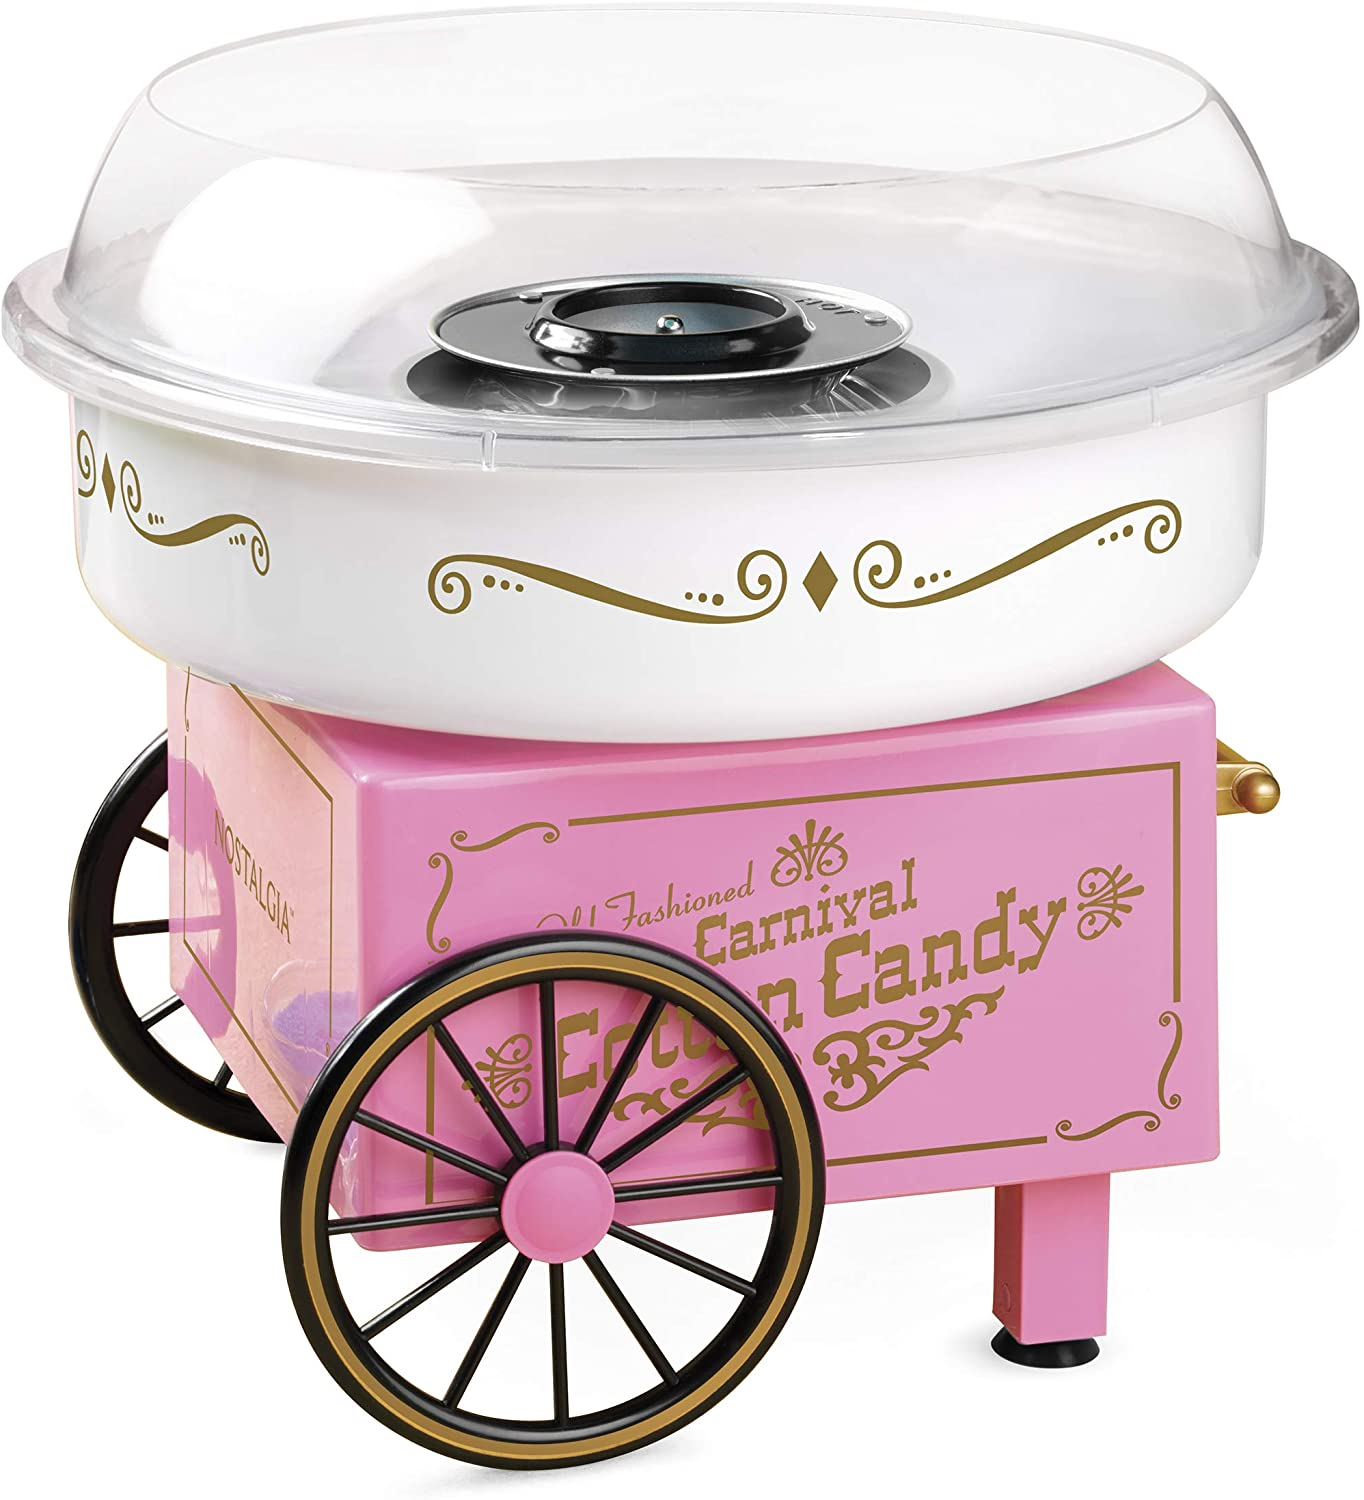 Nostalgia PCM306PK Vintage Hard Free Countertop Cotton Candy Maker, Includes 2 Reusable Cones And Sugar Scoop